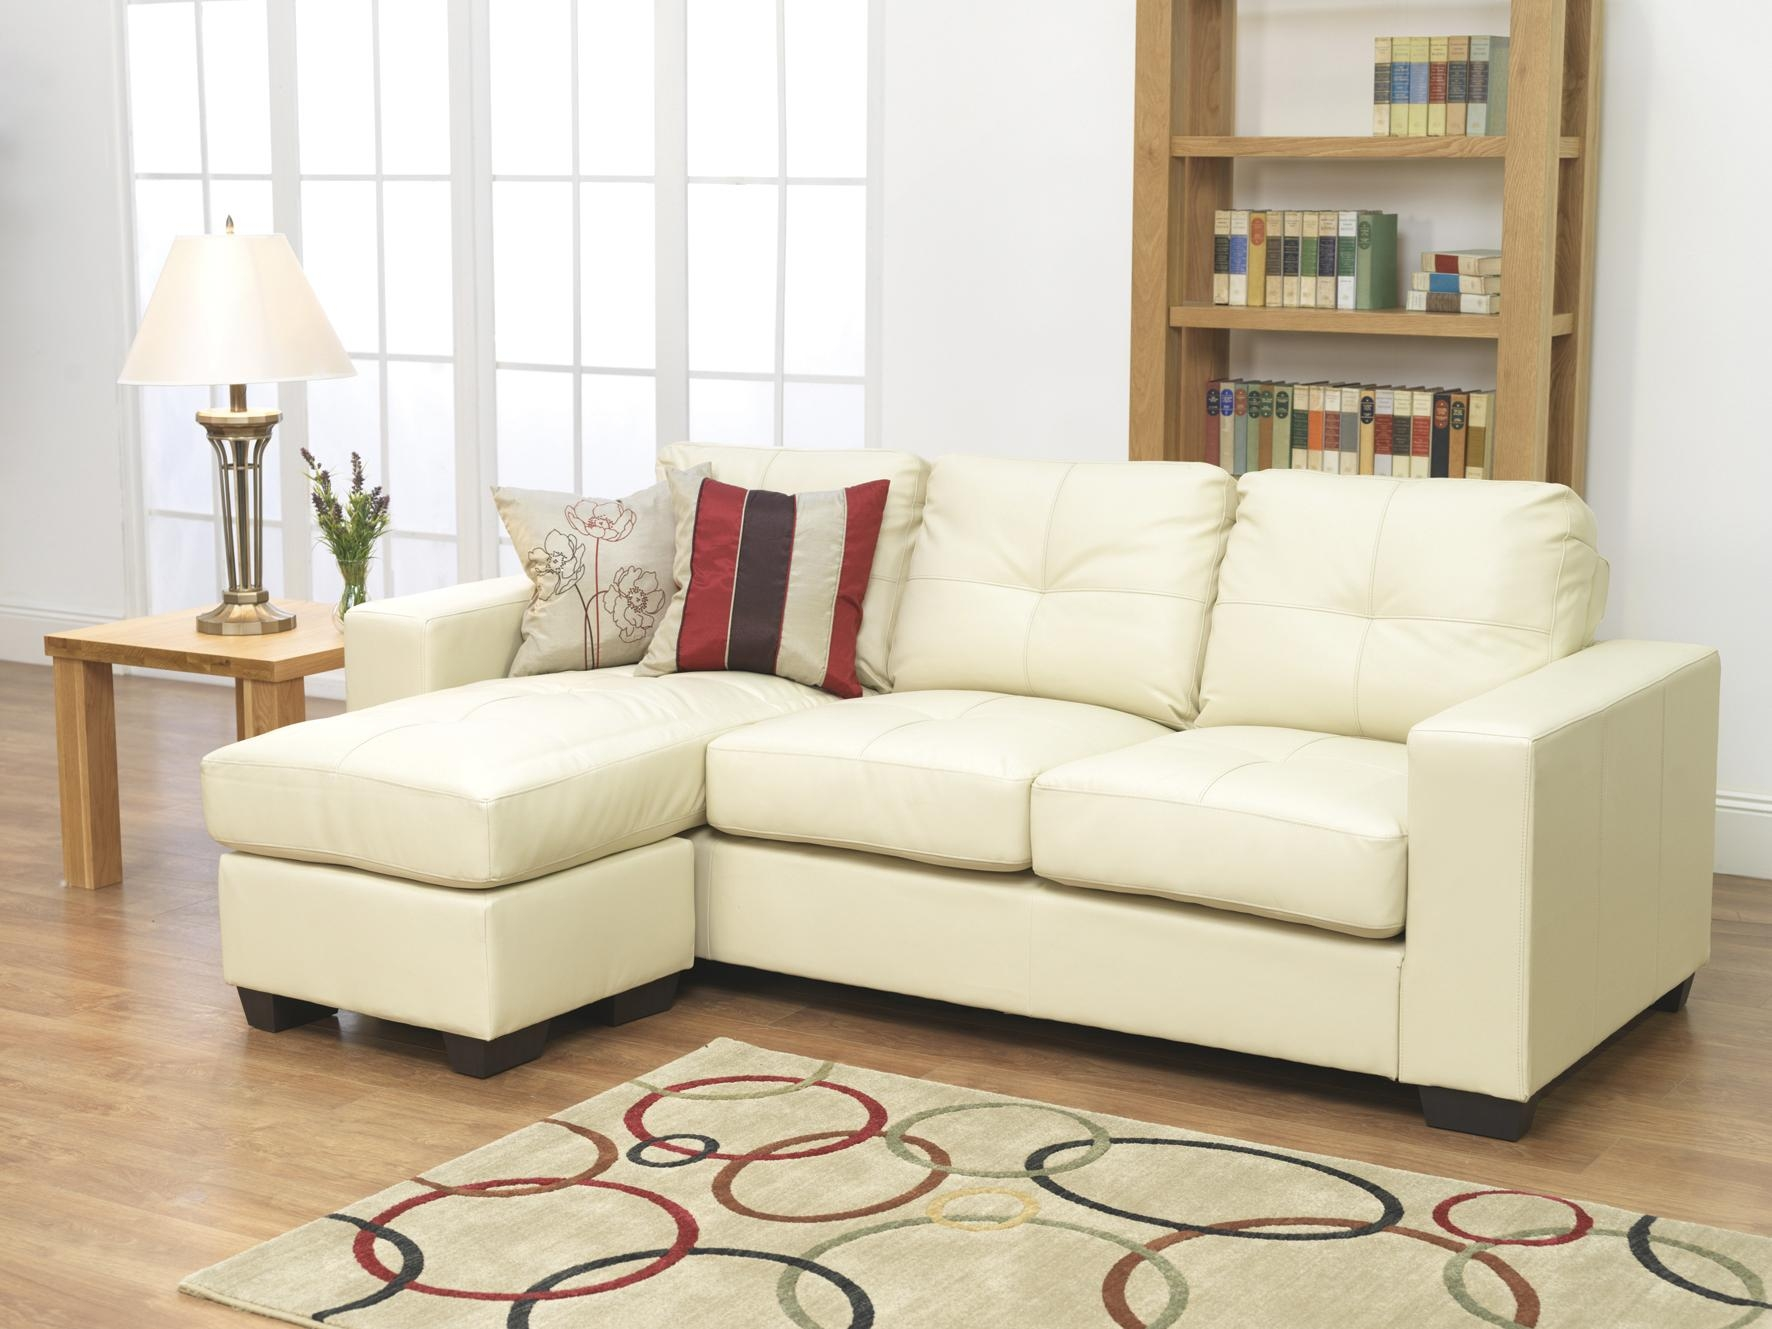 Ivory Color Leather Sofa Set | Centerfieldbar With Regard To Ivory Leather Sofas (Image 10 of 20)